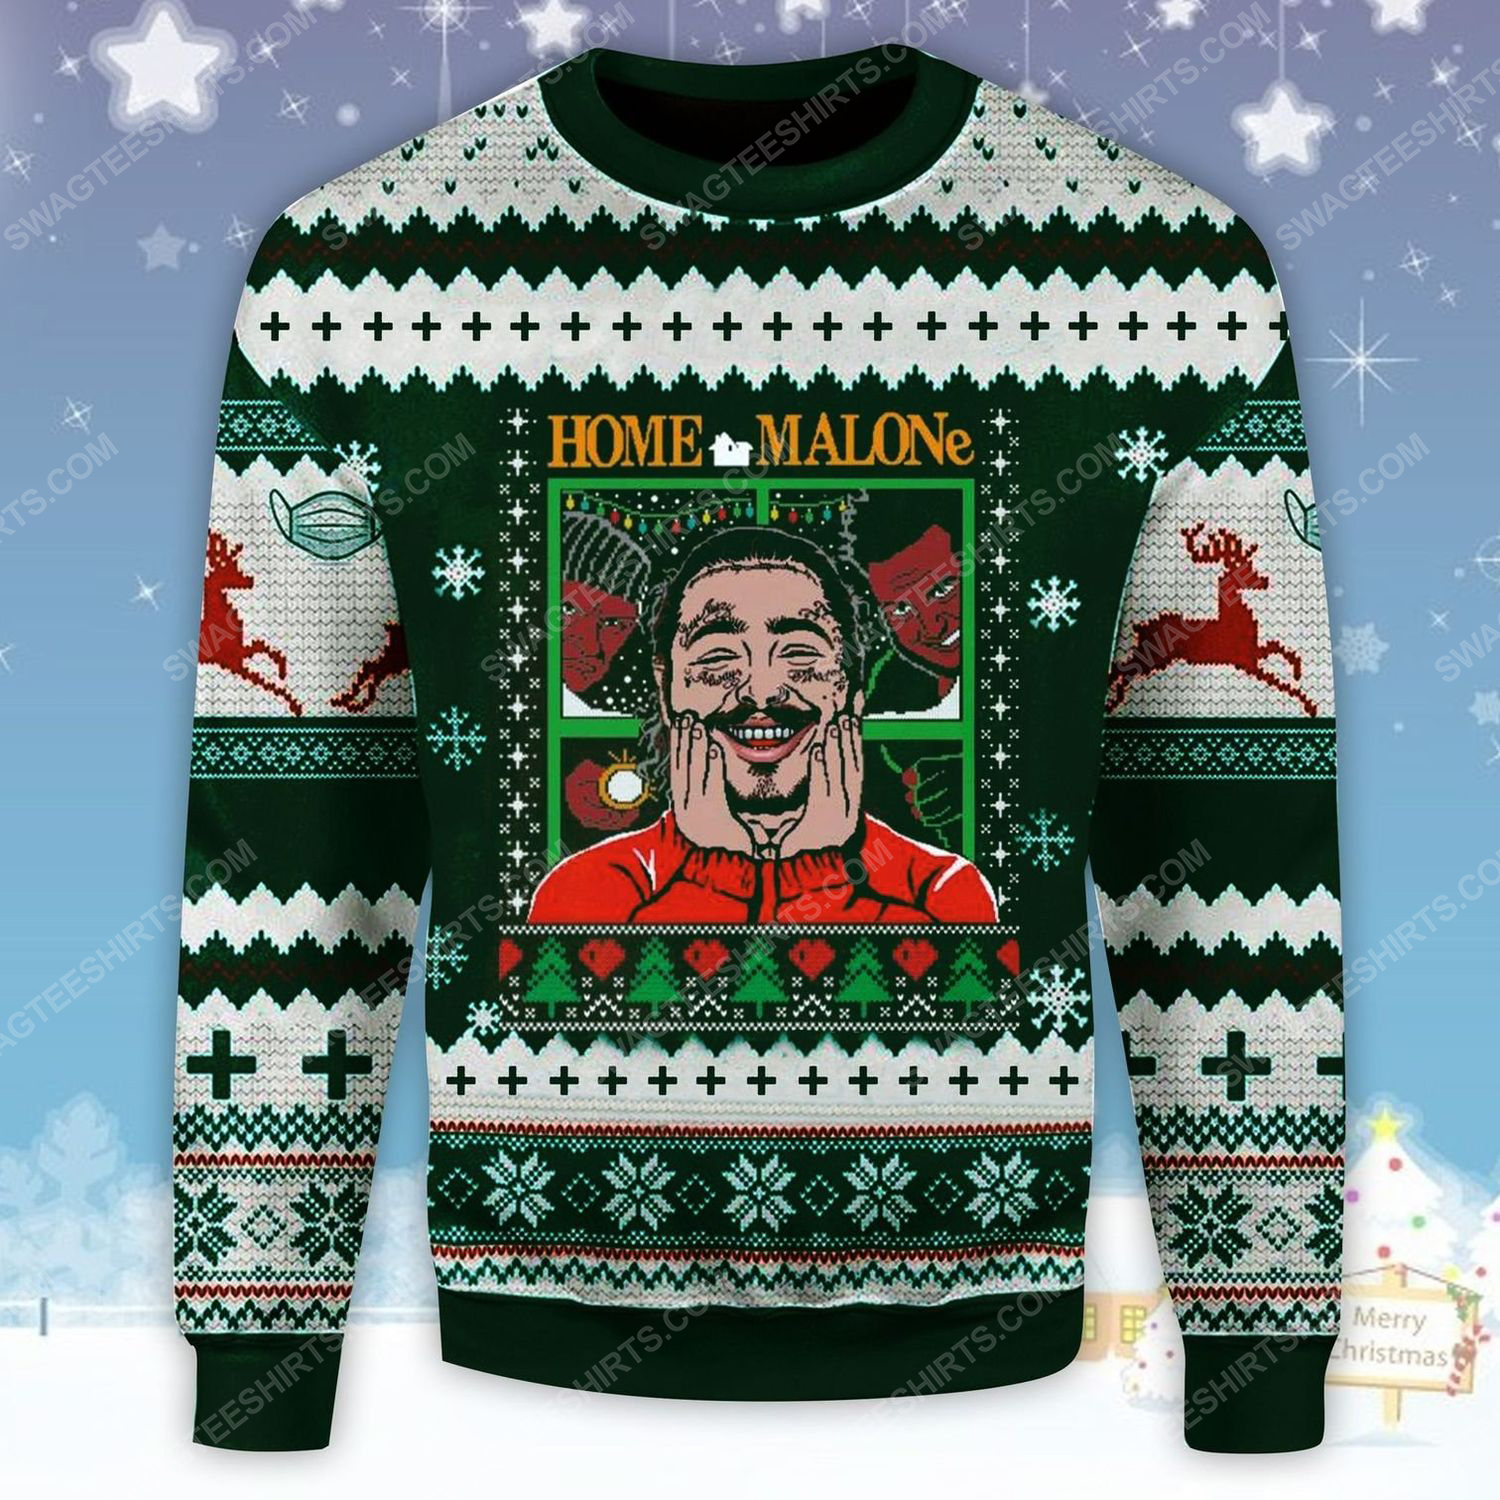 Home alone post malone ugly christmas sweater